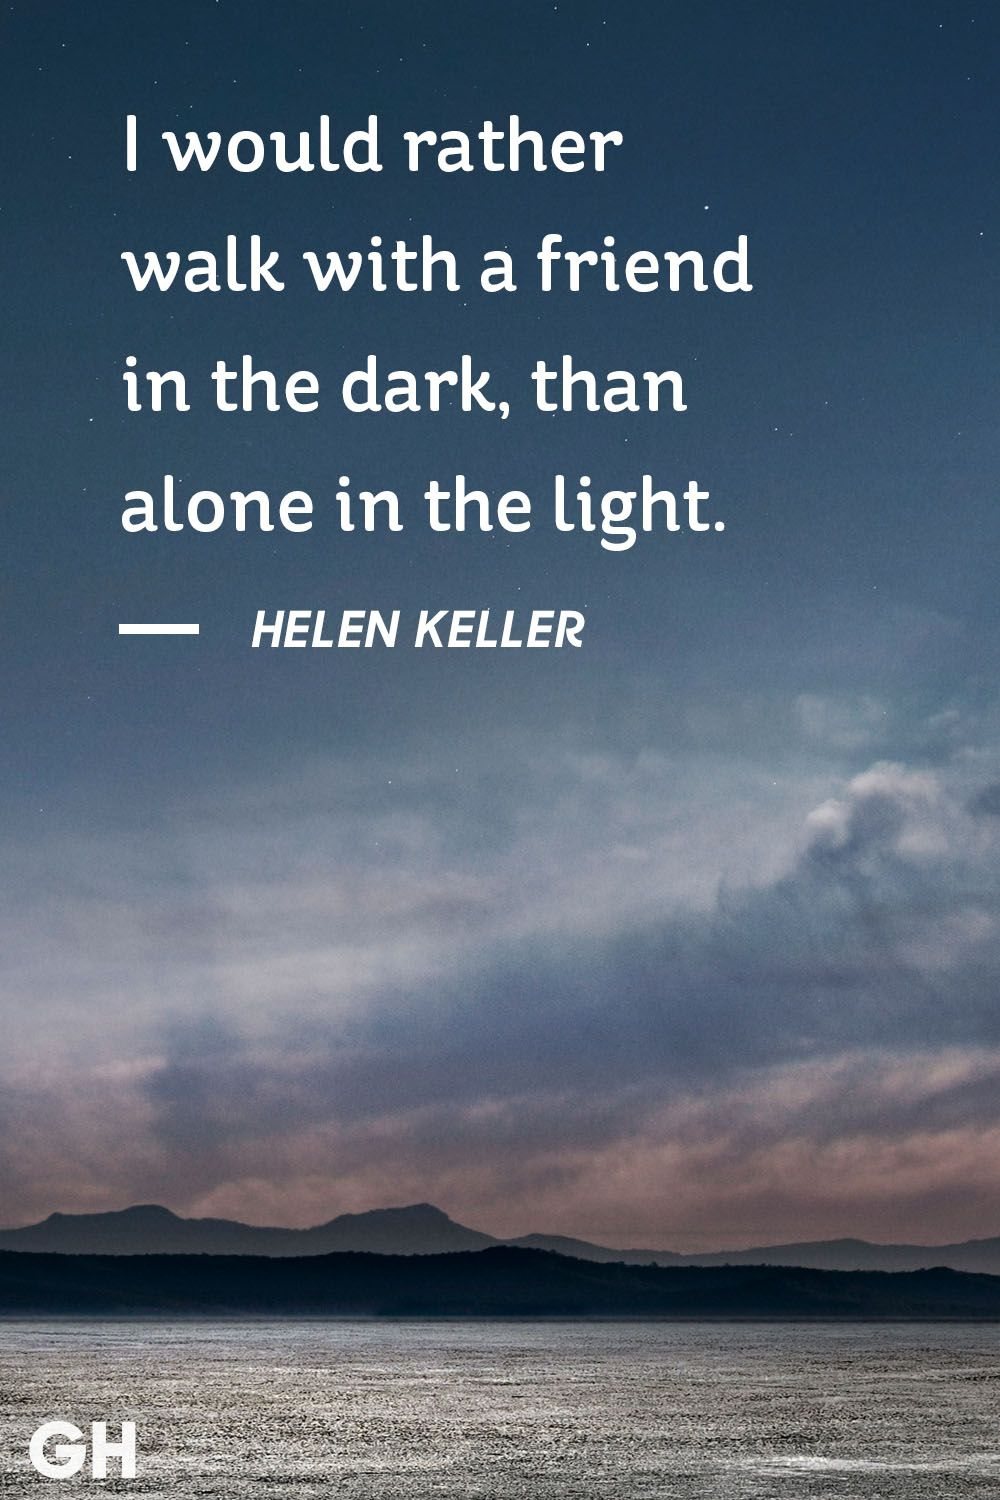 Delightful 25 Short Friendship Quotes To Share With Your Best Friend   Cute Sayings  About Friends